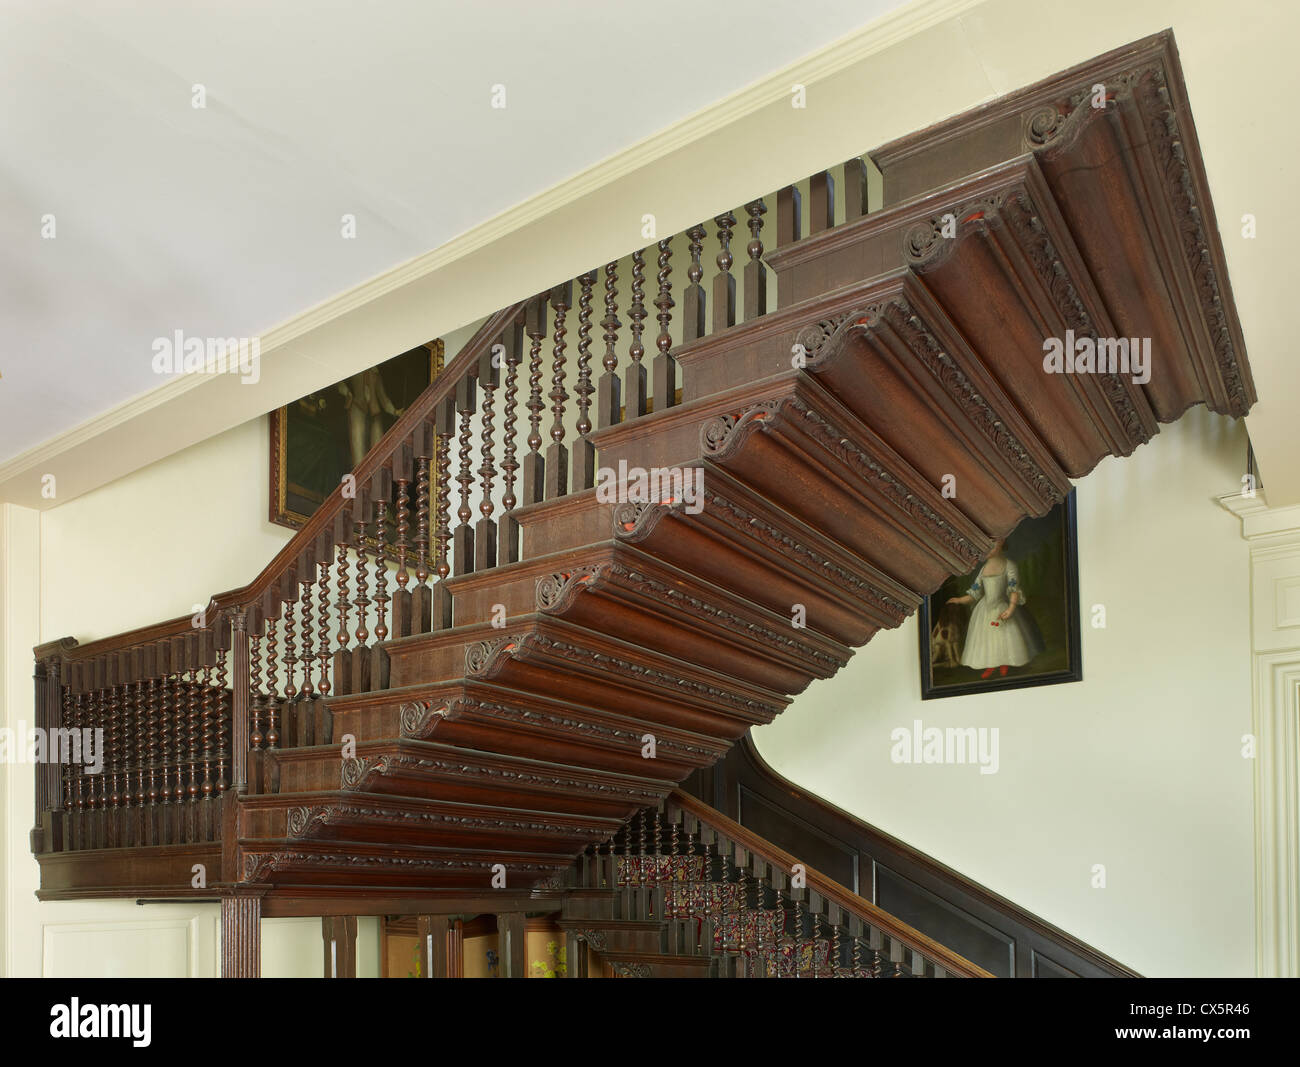 Bradbourne, East Malling, Kent. staircase - Stock Image